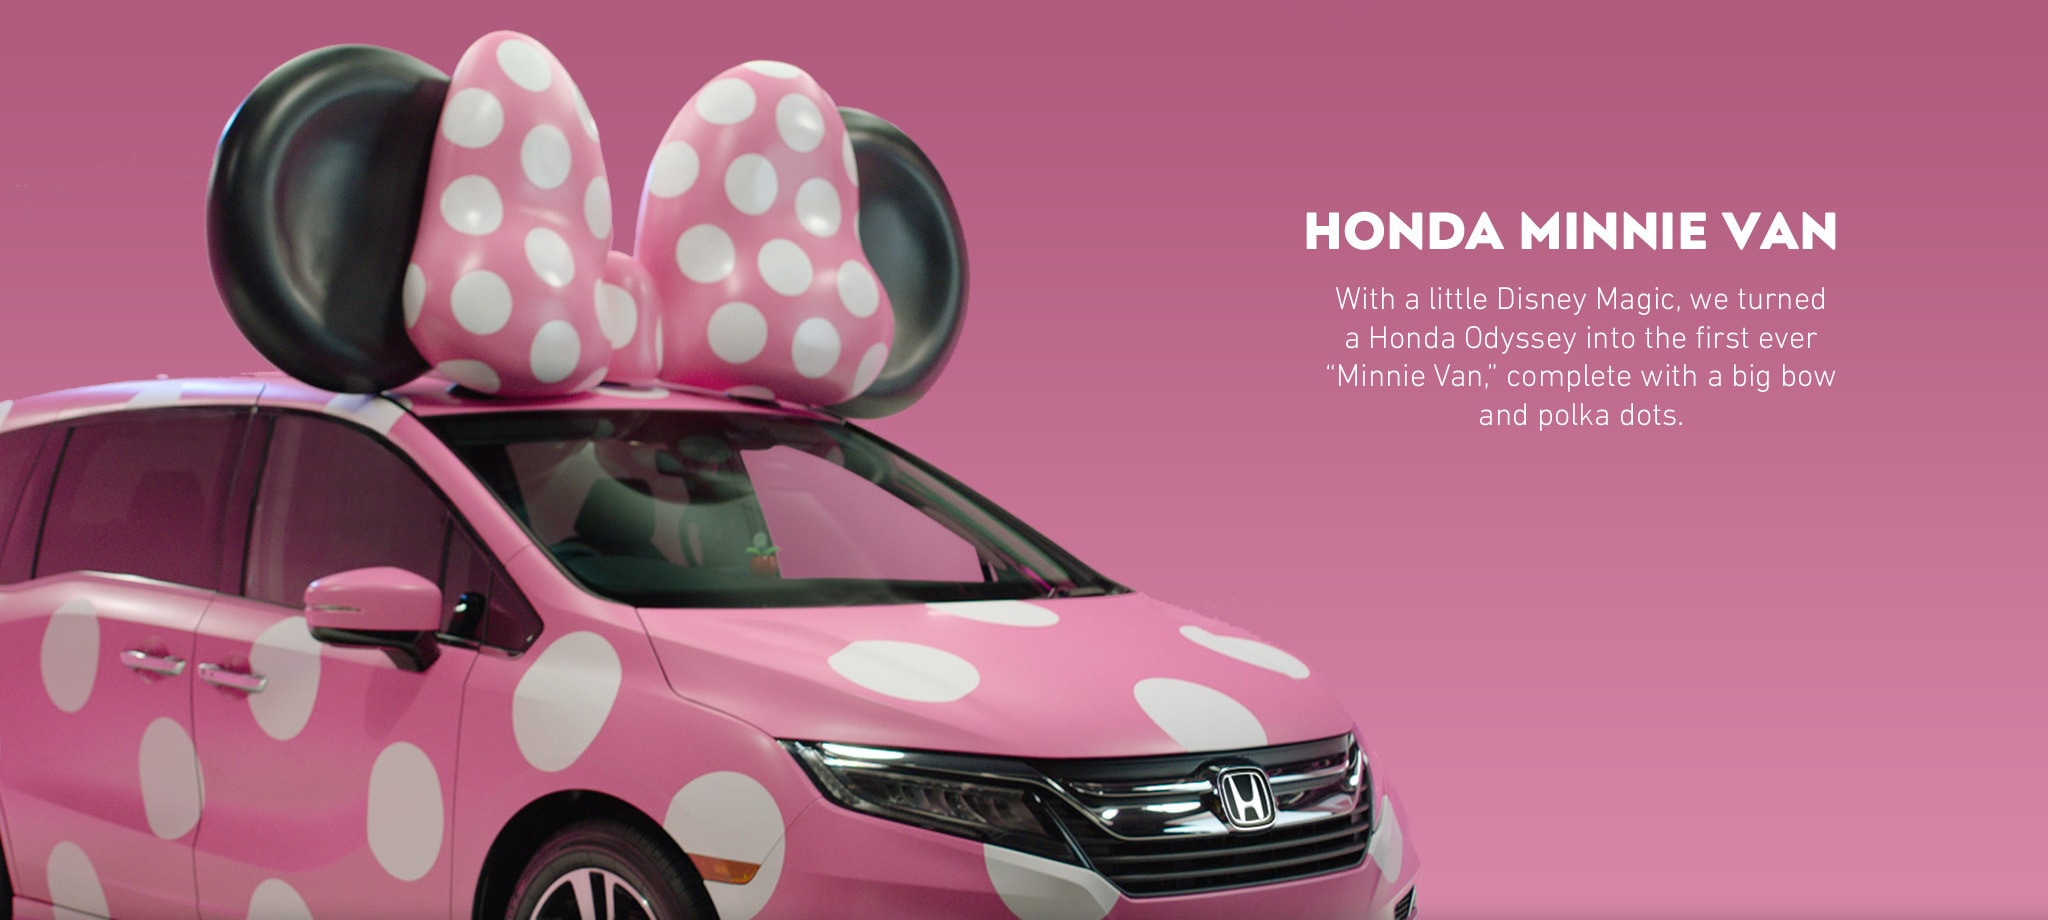 "HONDA MINNIE VAN: With a little Disney Magic, we turned a Honda Odyssey into the first ever ""Minnie Van,"" complete with a big bow and polka dots."